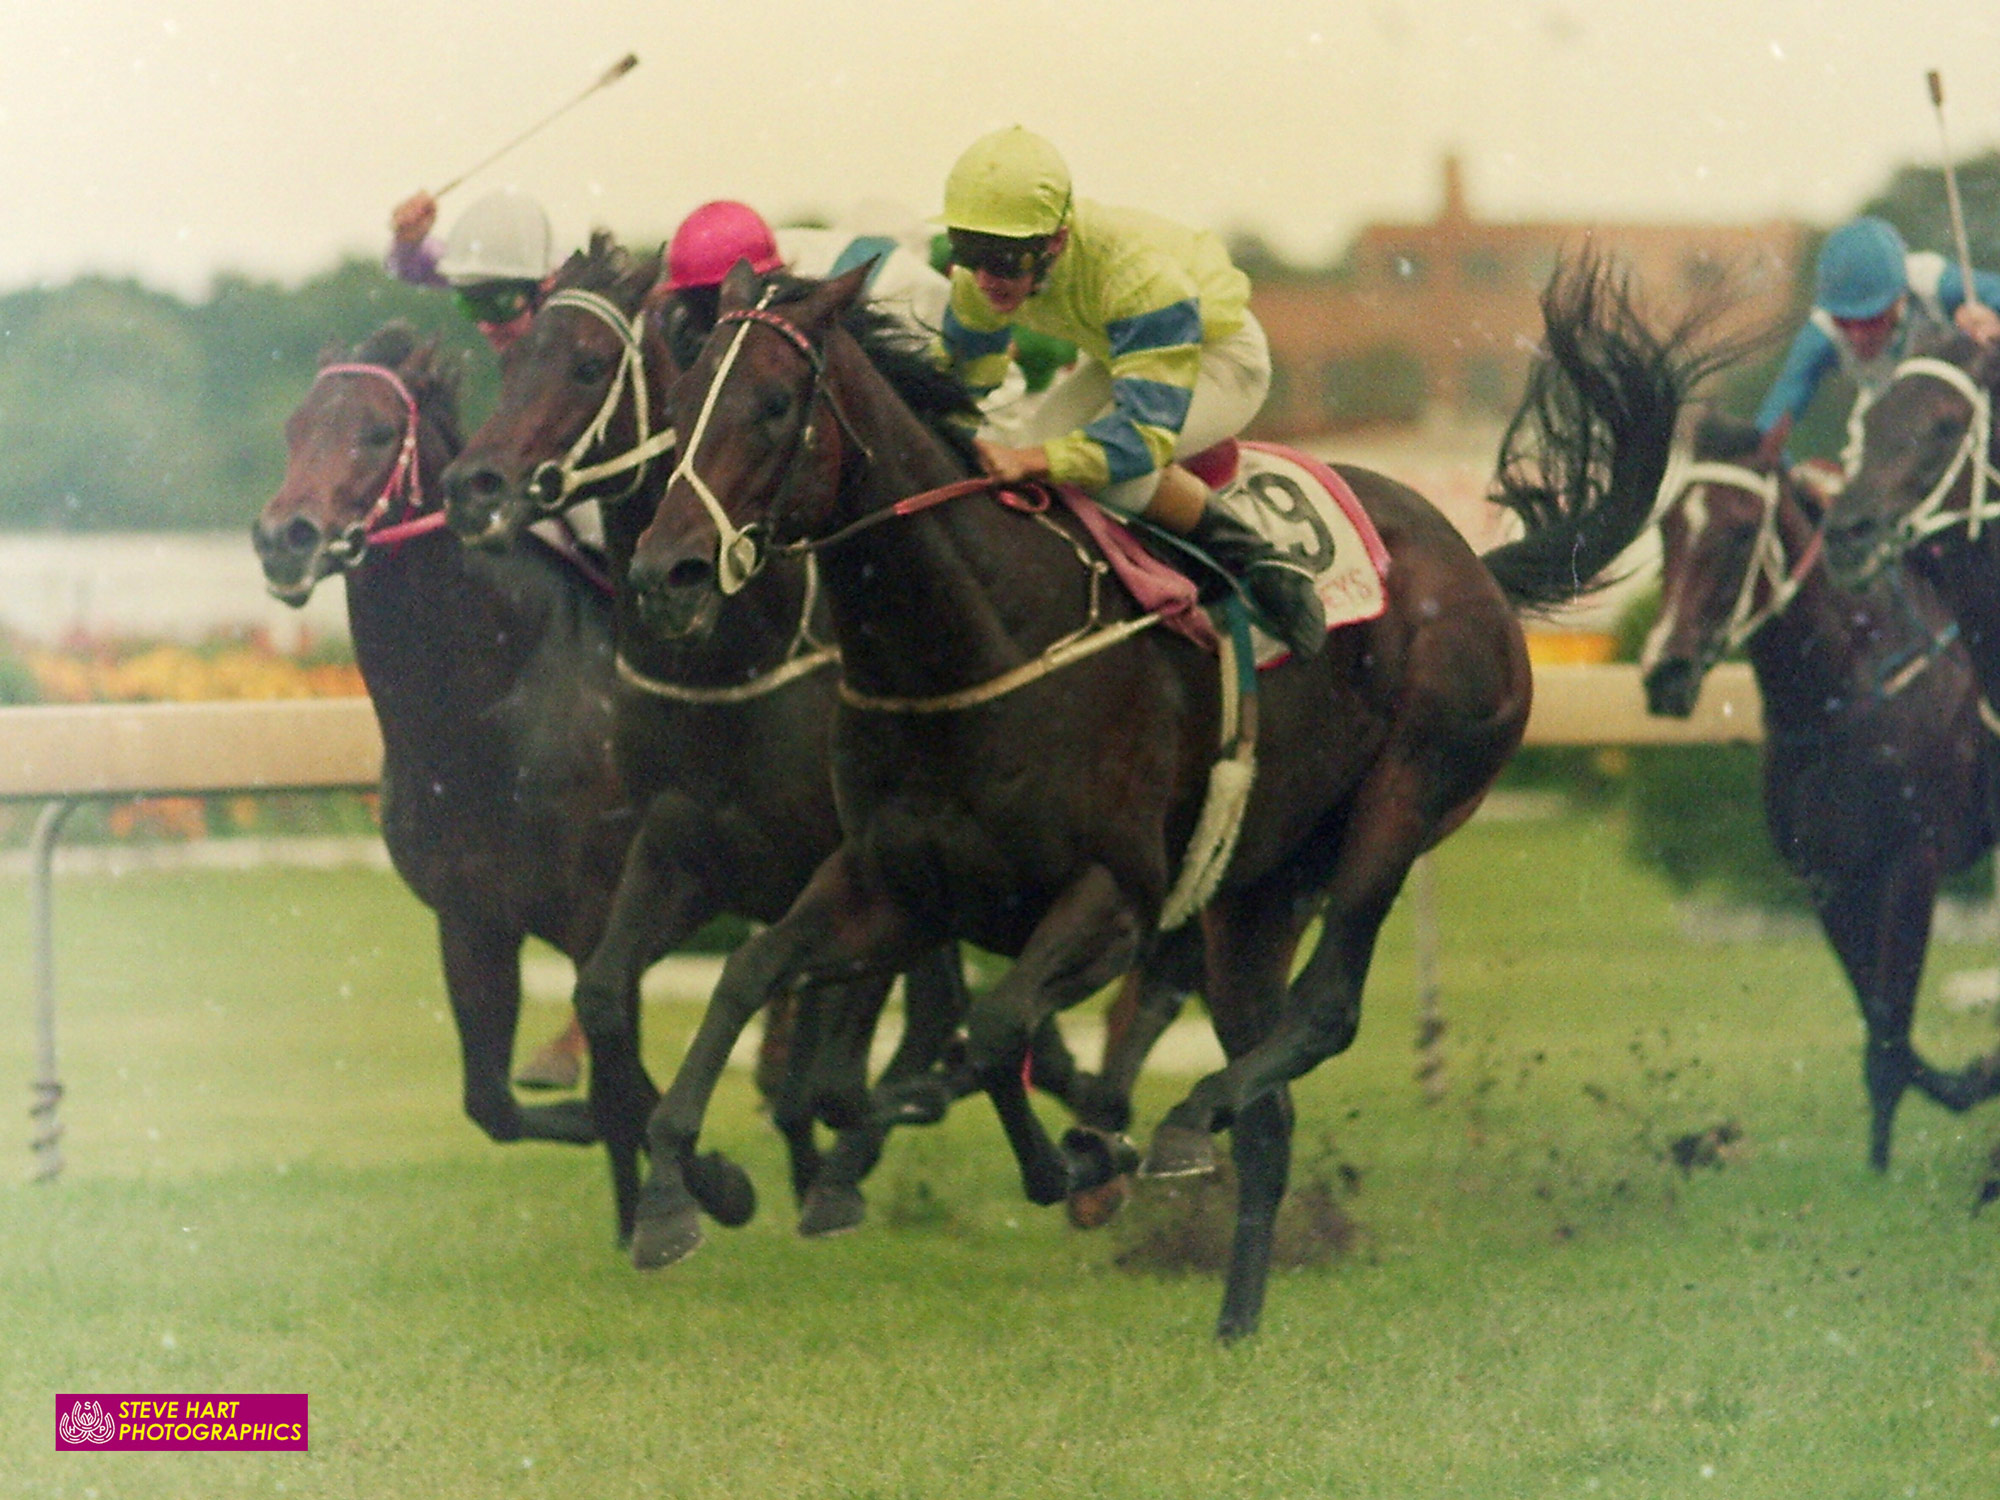 Image courtesy Steve Hart Photographics - The Ross McDonald trained Courtza storms home to give Shane Dye the first of his four Golden Slipper wins 1989.